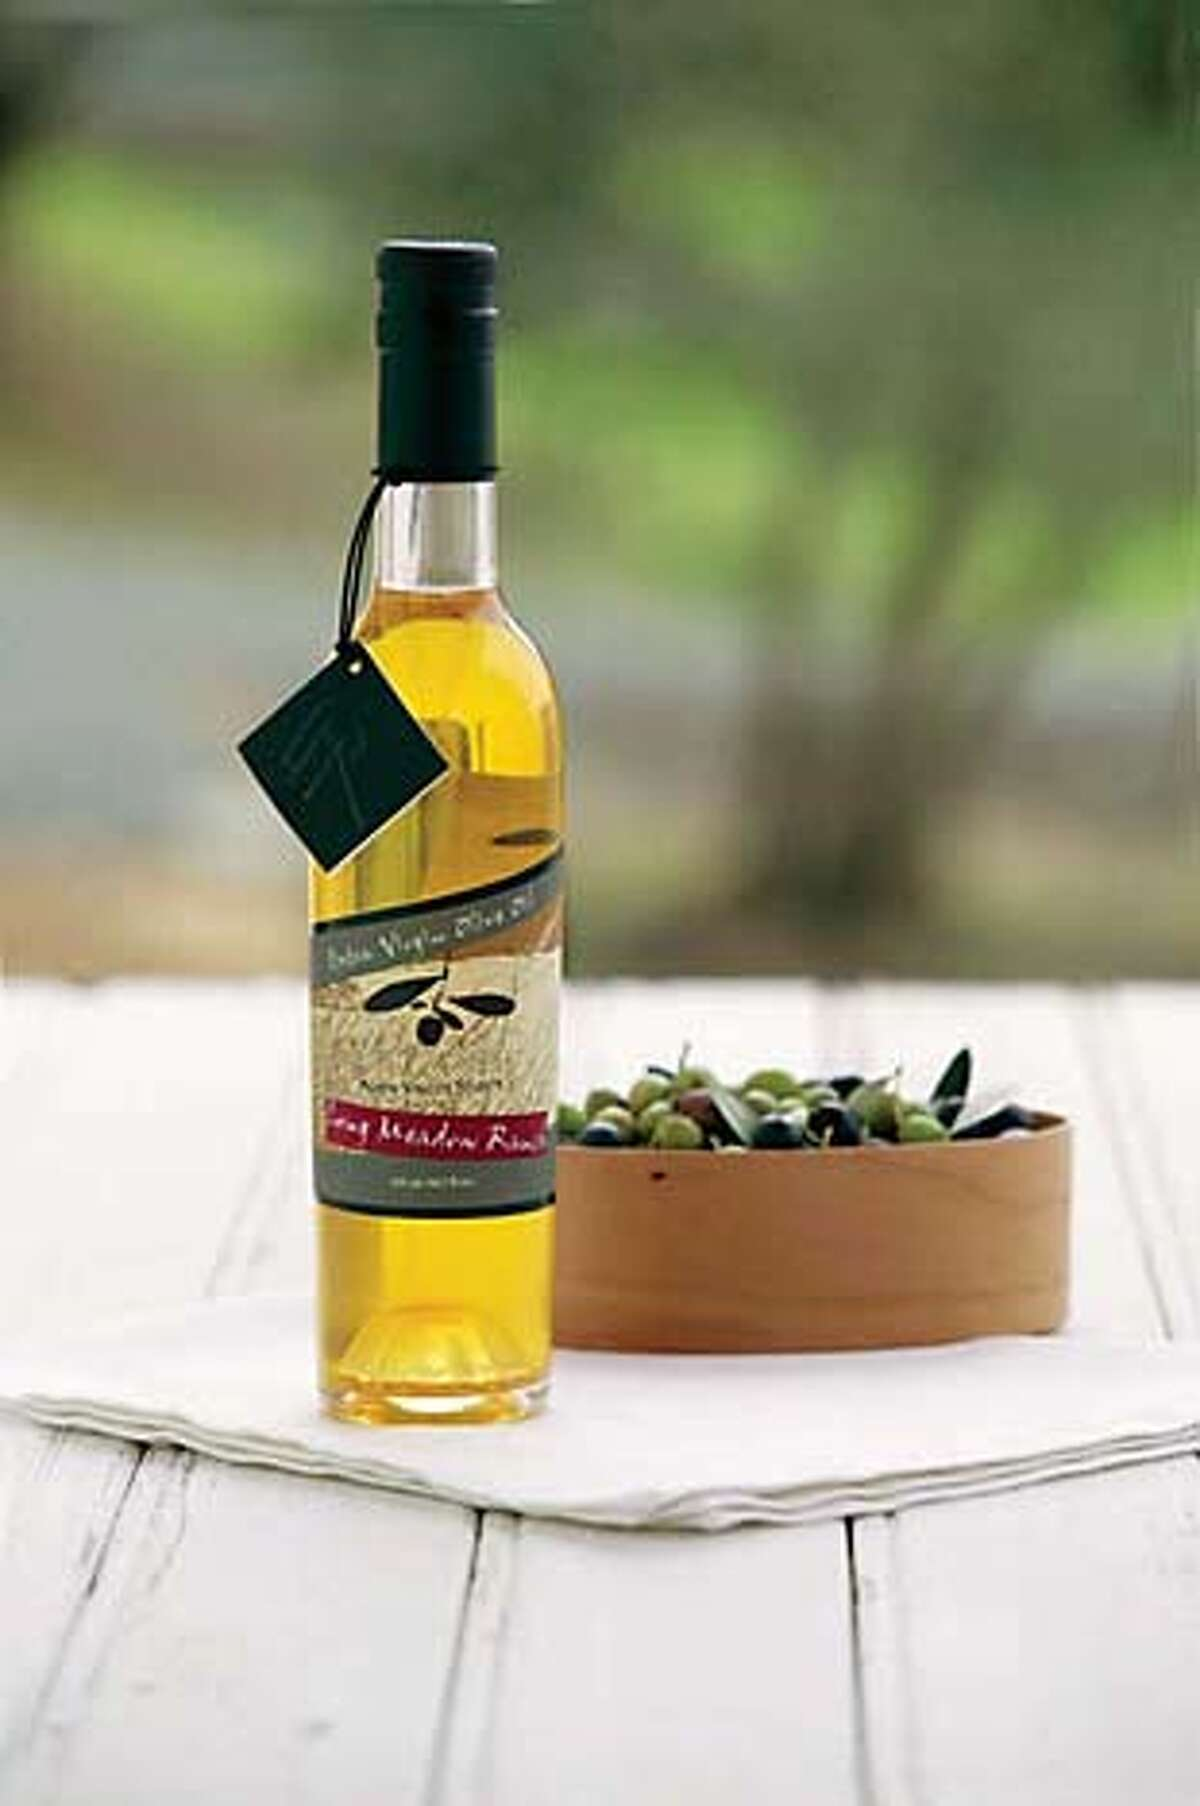 At Long Meadow Ranch, visitors can taste a variety of olive oils. Photo courtesy of Long Meadow Ranch